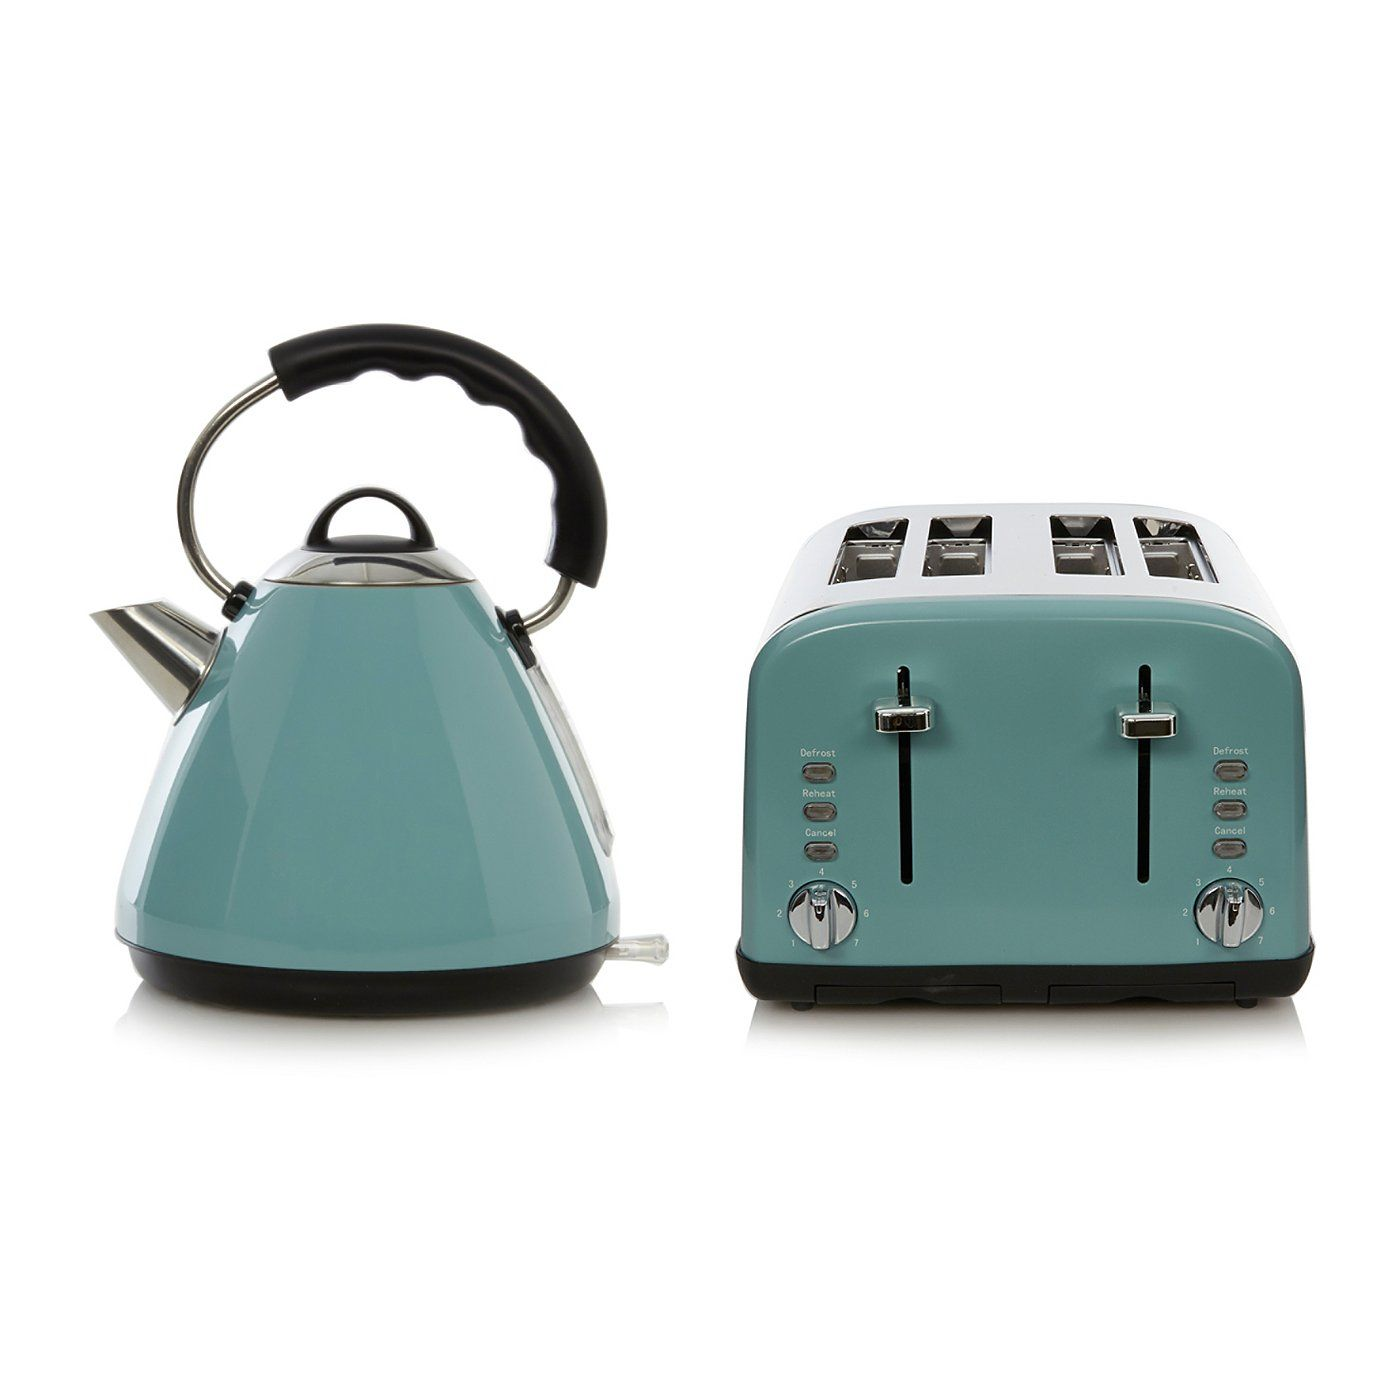 Buy George Home Pyramid Kettle & 4 Slice Toaster Range - Blue from ...